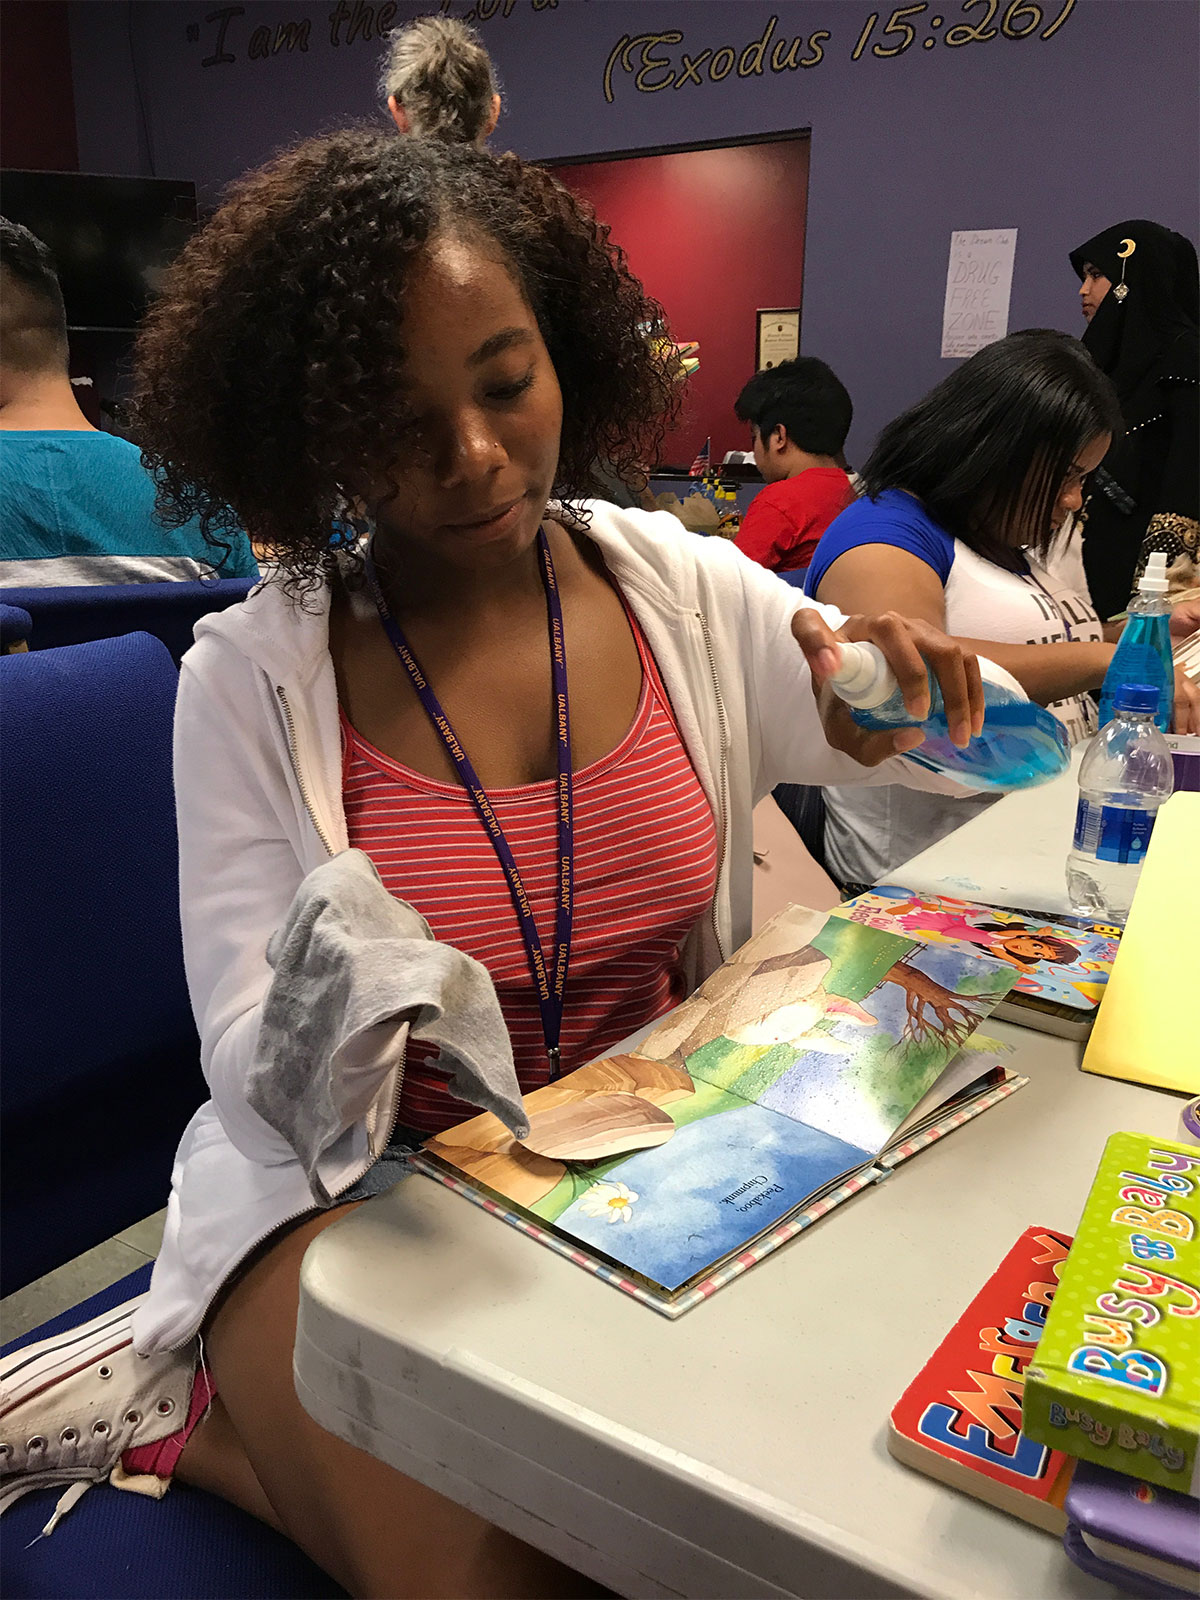 An african-american female UAlbany EOP student cleans childrens books at a table.